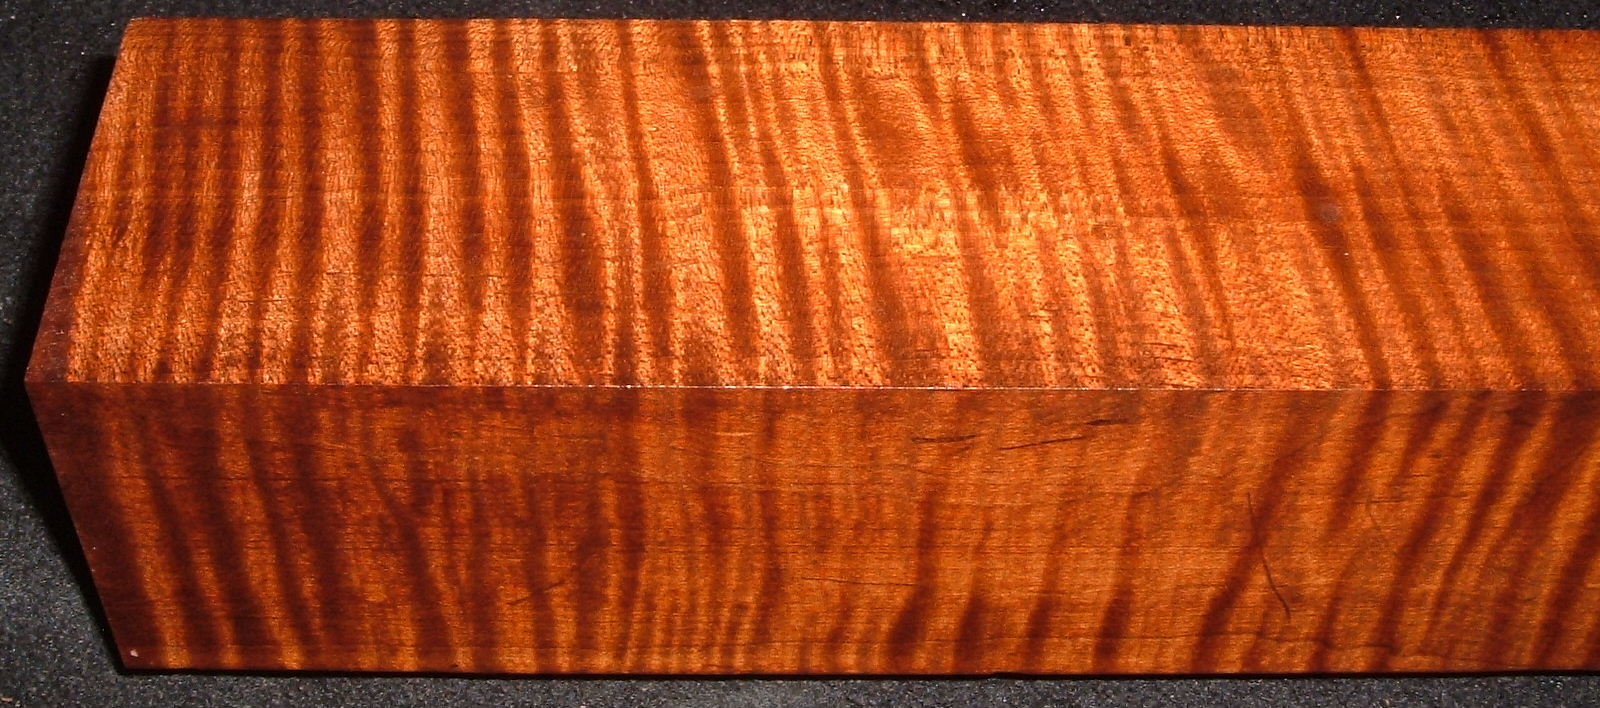 RTB-9,2-5/8x2-5/8x14, Torrefied Roasted, Curly Tiger Maple, Turning Block